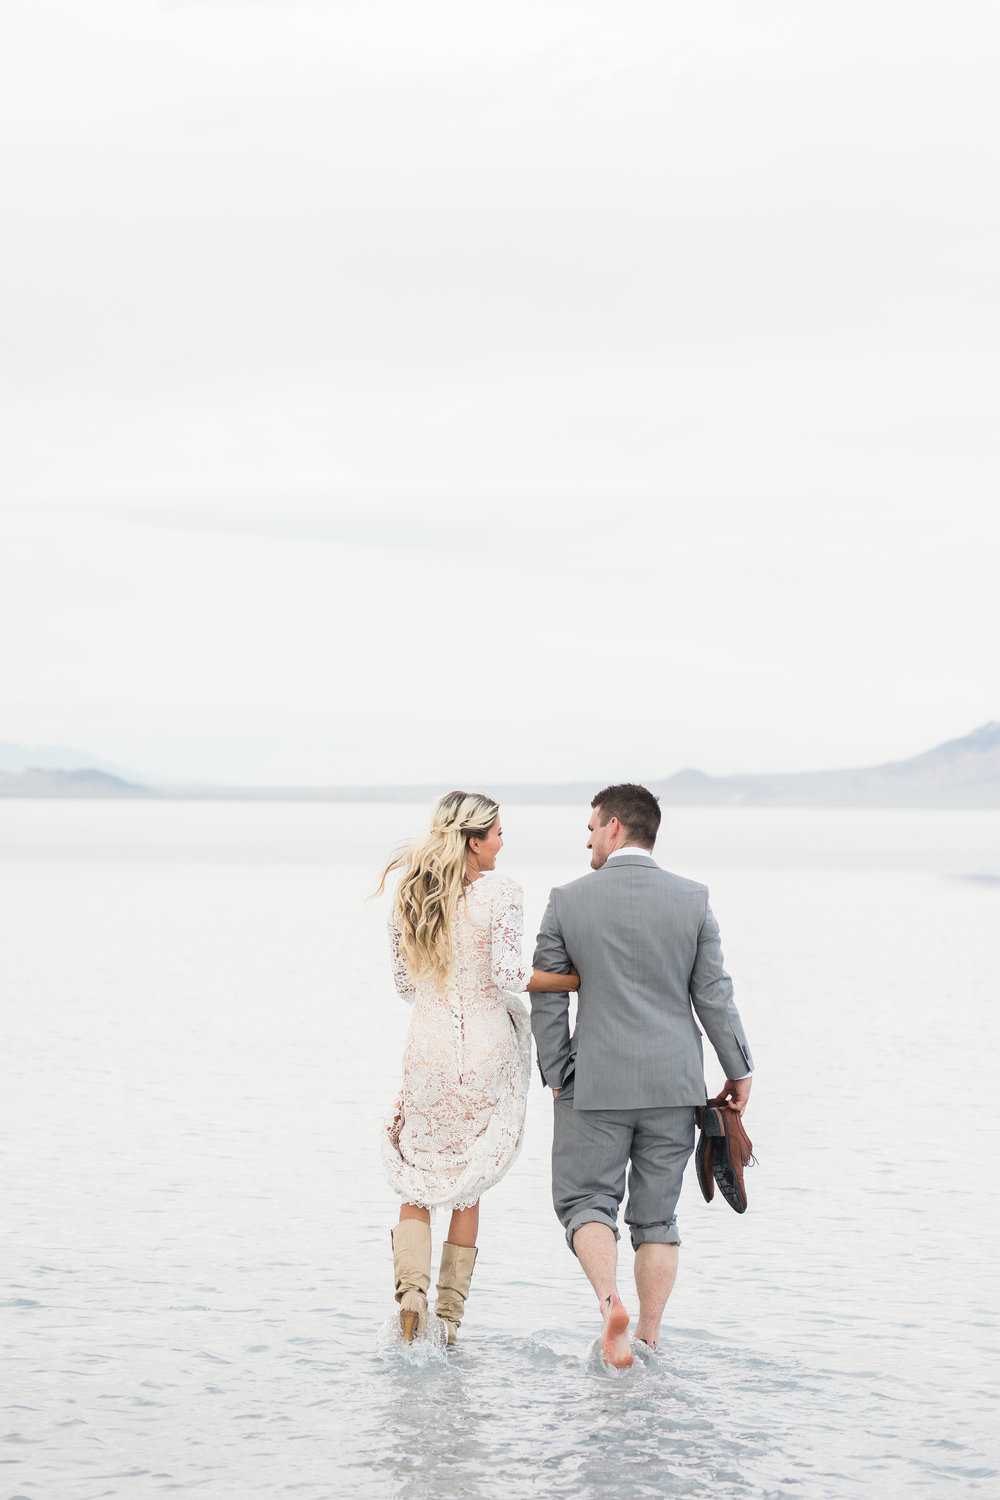 Bride and groom walking through water Bonneville Salt Flats Utah bridals